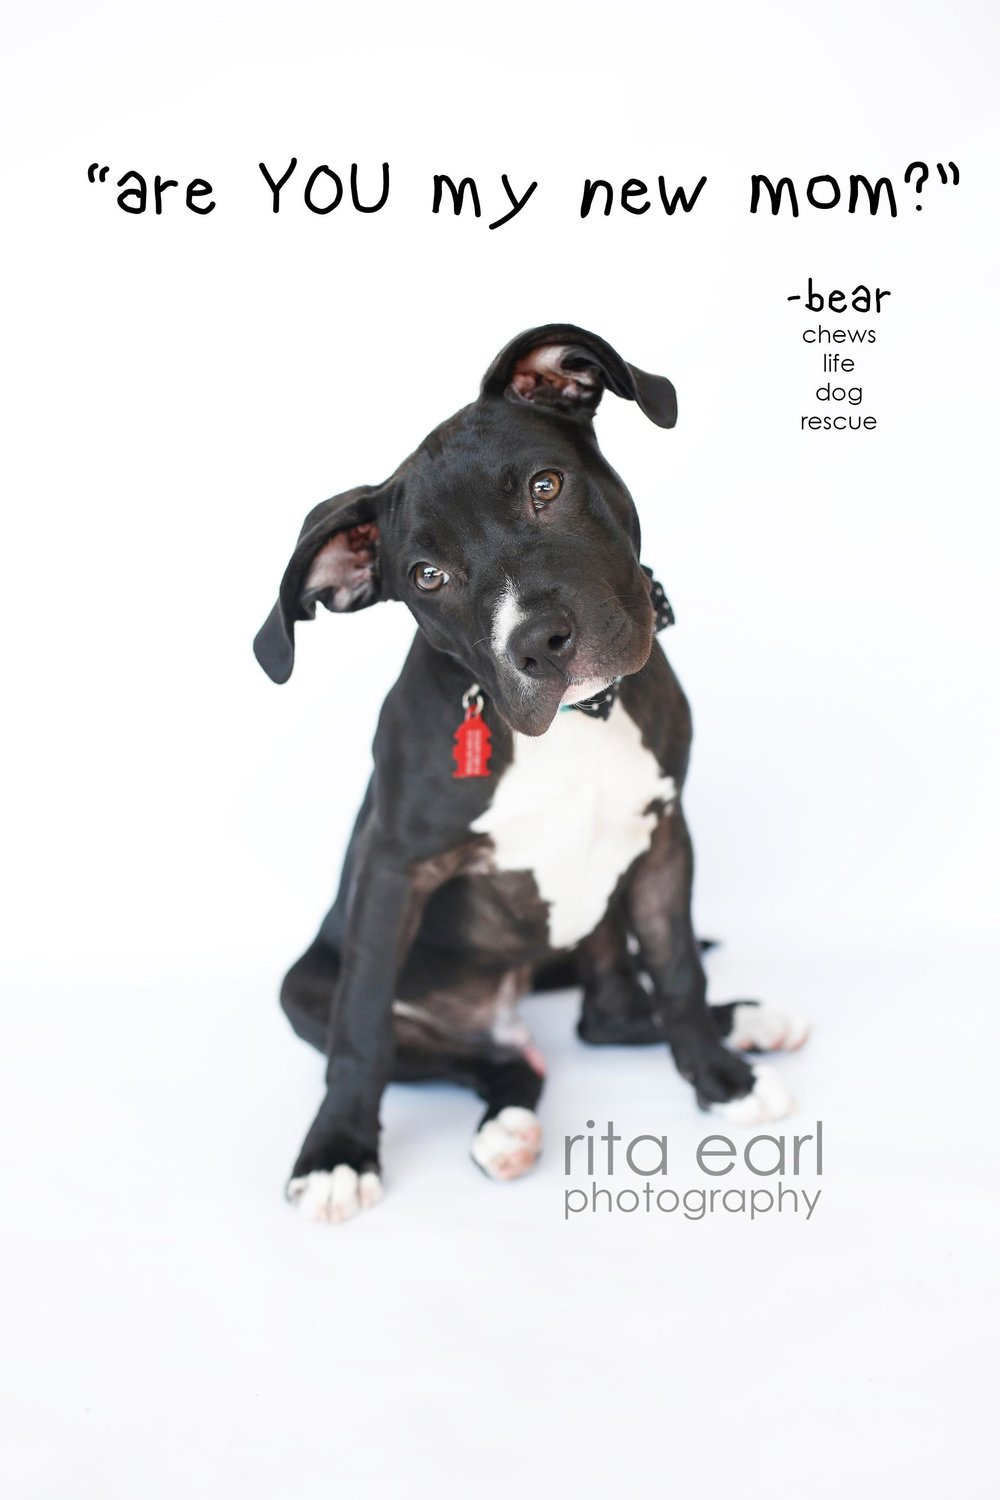 This is Bear. Bear is currently In boarding and all behavior issues have been addressed thanks to the wonderful training by Stephanie at Canine Alpha He is ready to be adopted! However, until we find him his perfect forever home, we need to raise $500 a week for his boarding and training. Click on his image to donate to his GoFundMe.